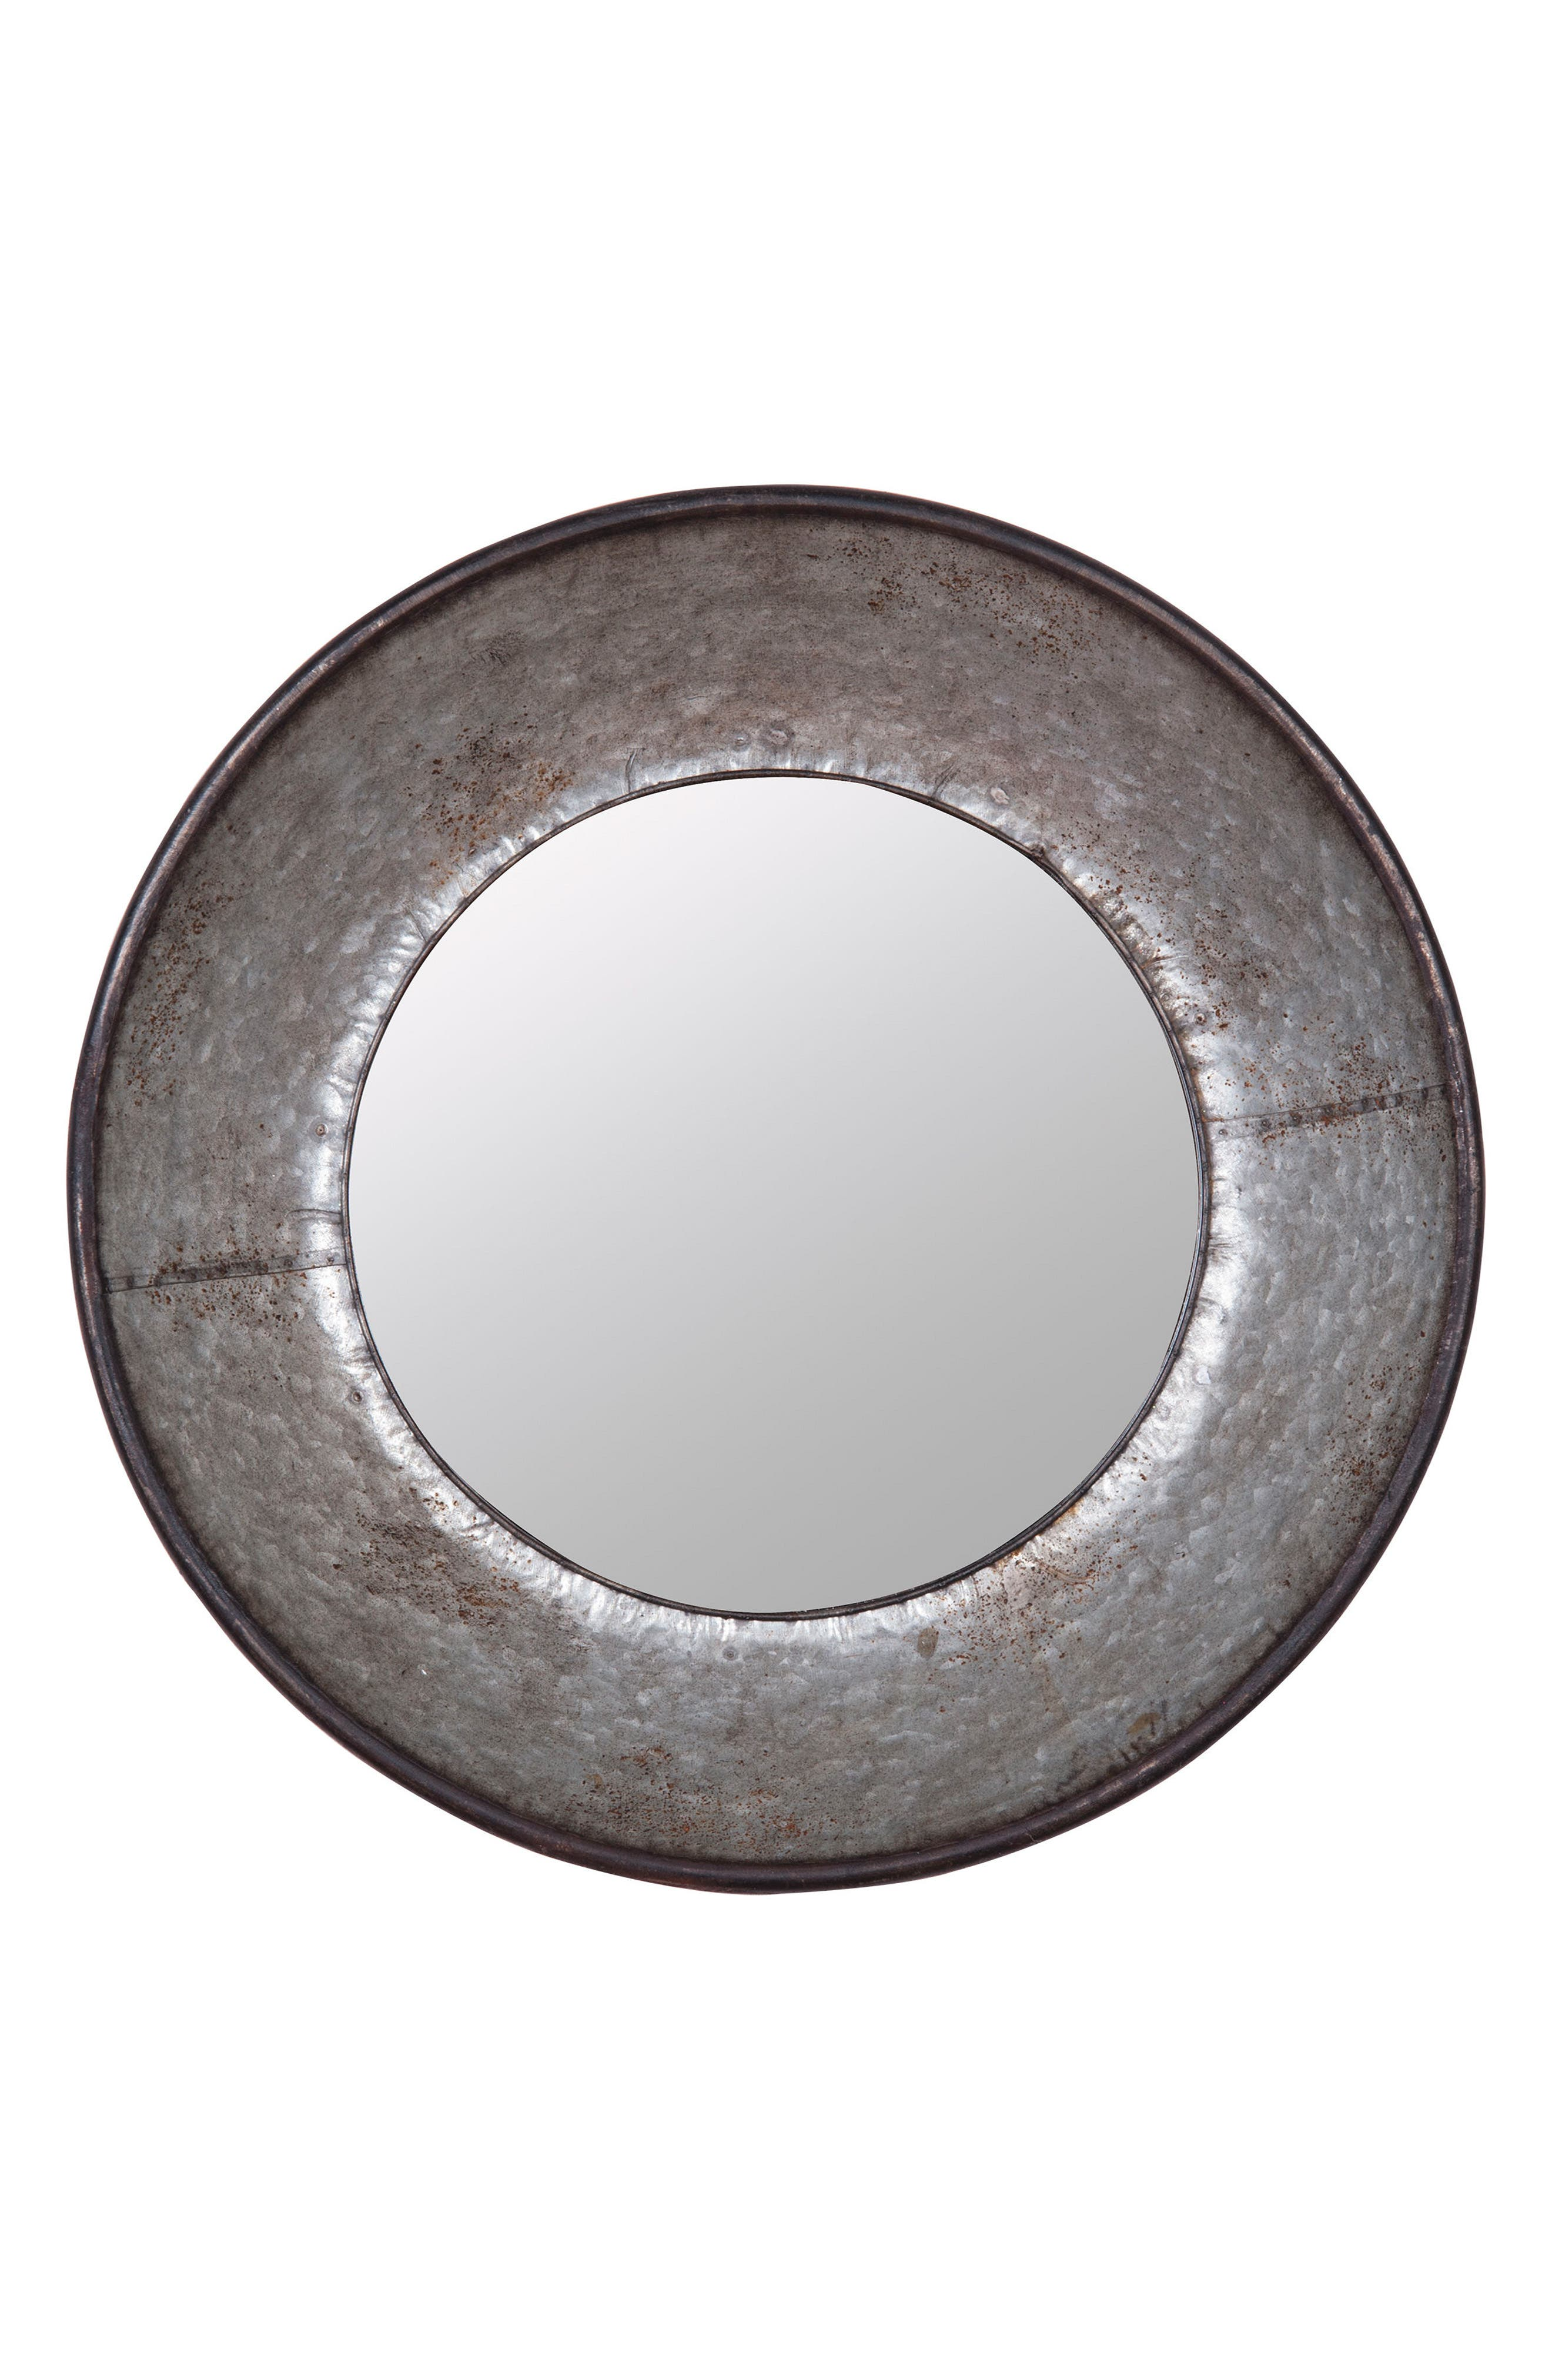 Alternate Image 1 Selected - Foreside Frisco Round Mirror